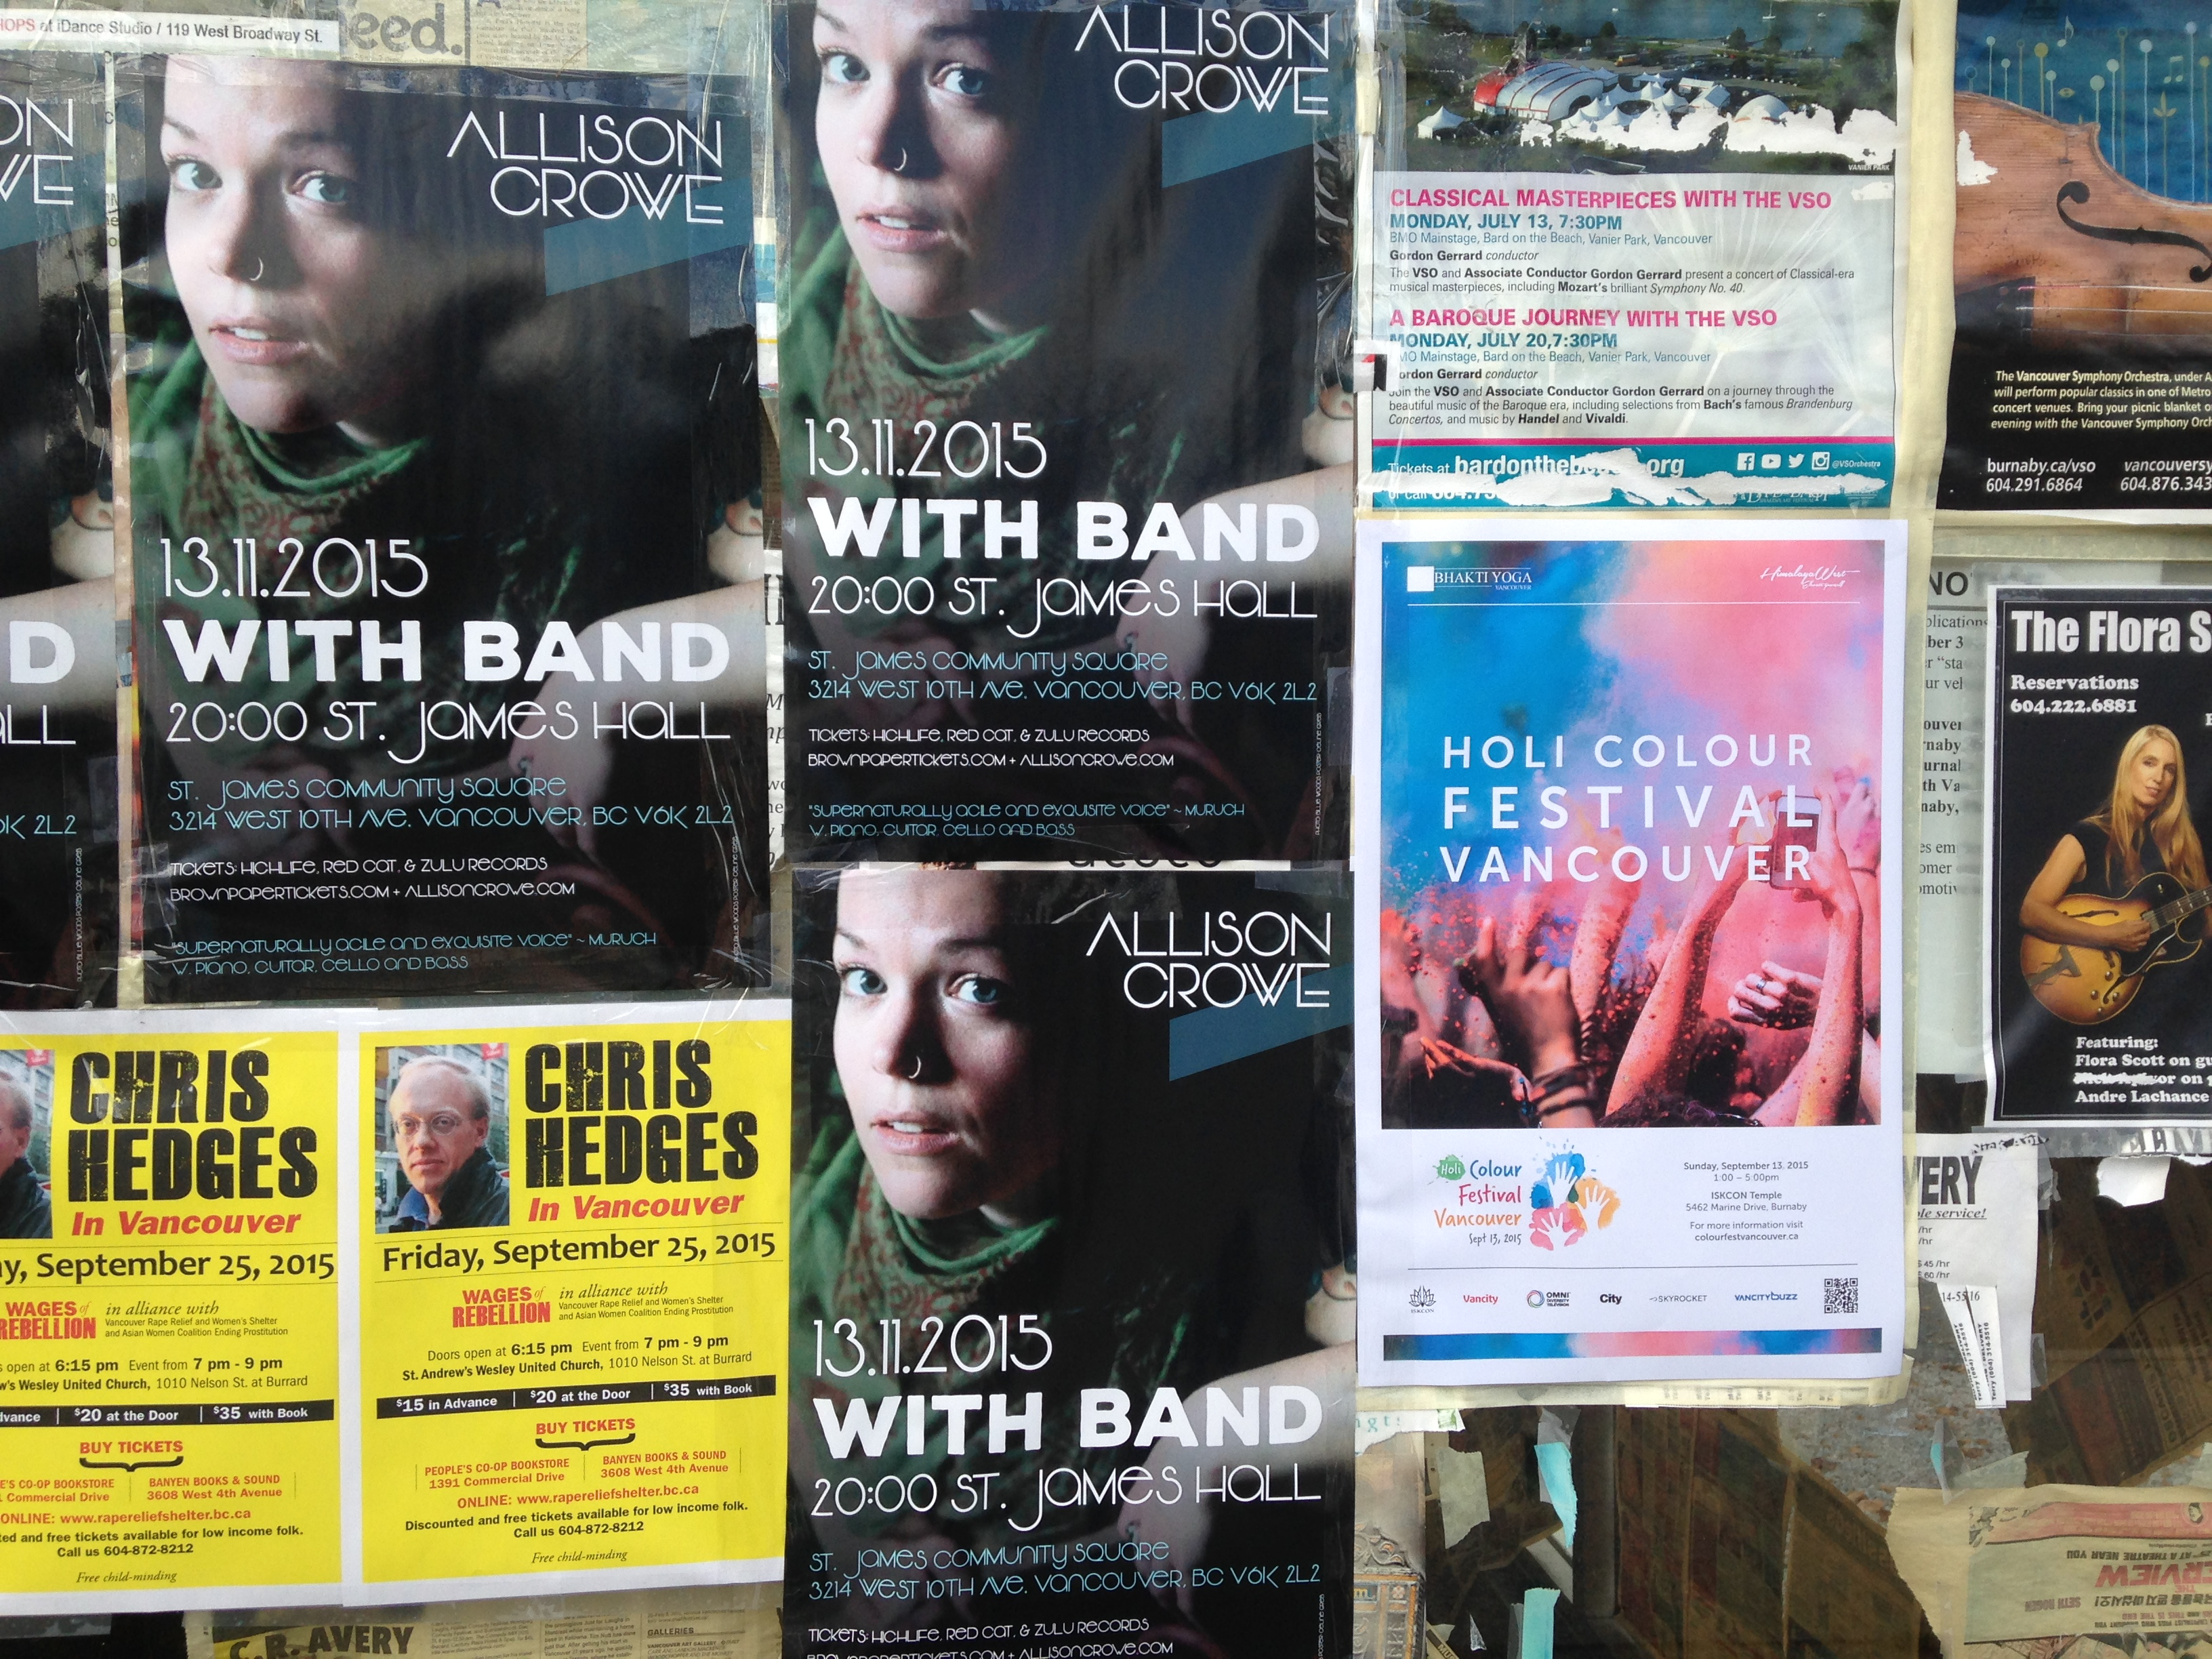 Allison Crowe Band concert poster - Vancouver street 2015